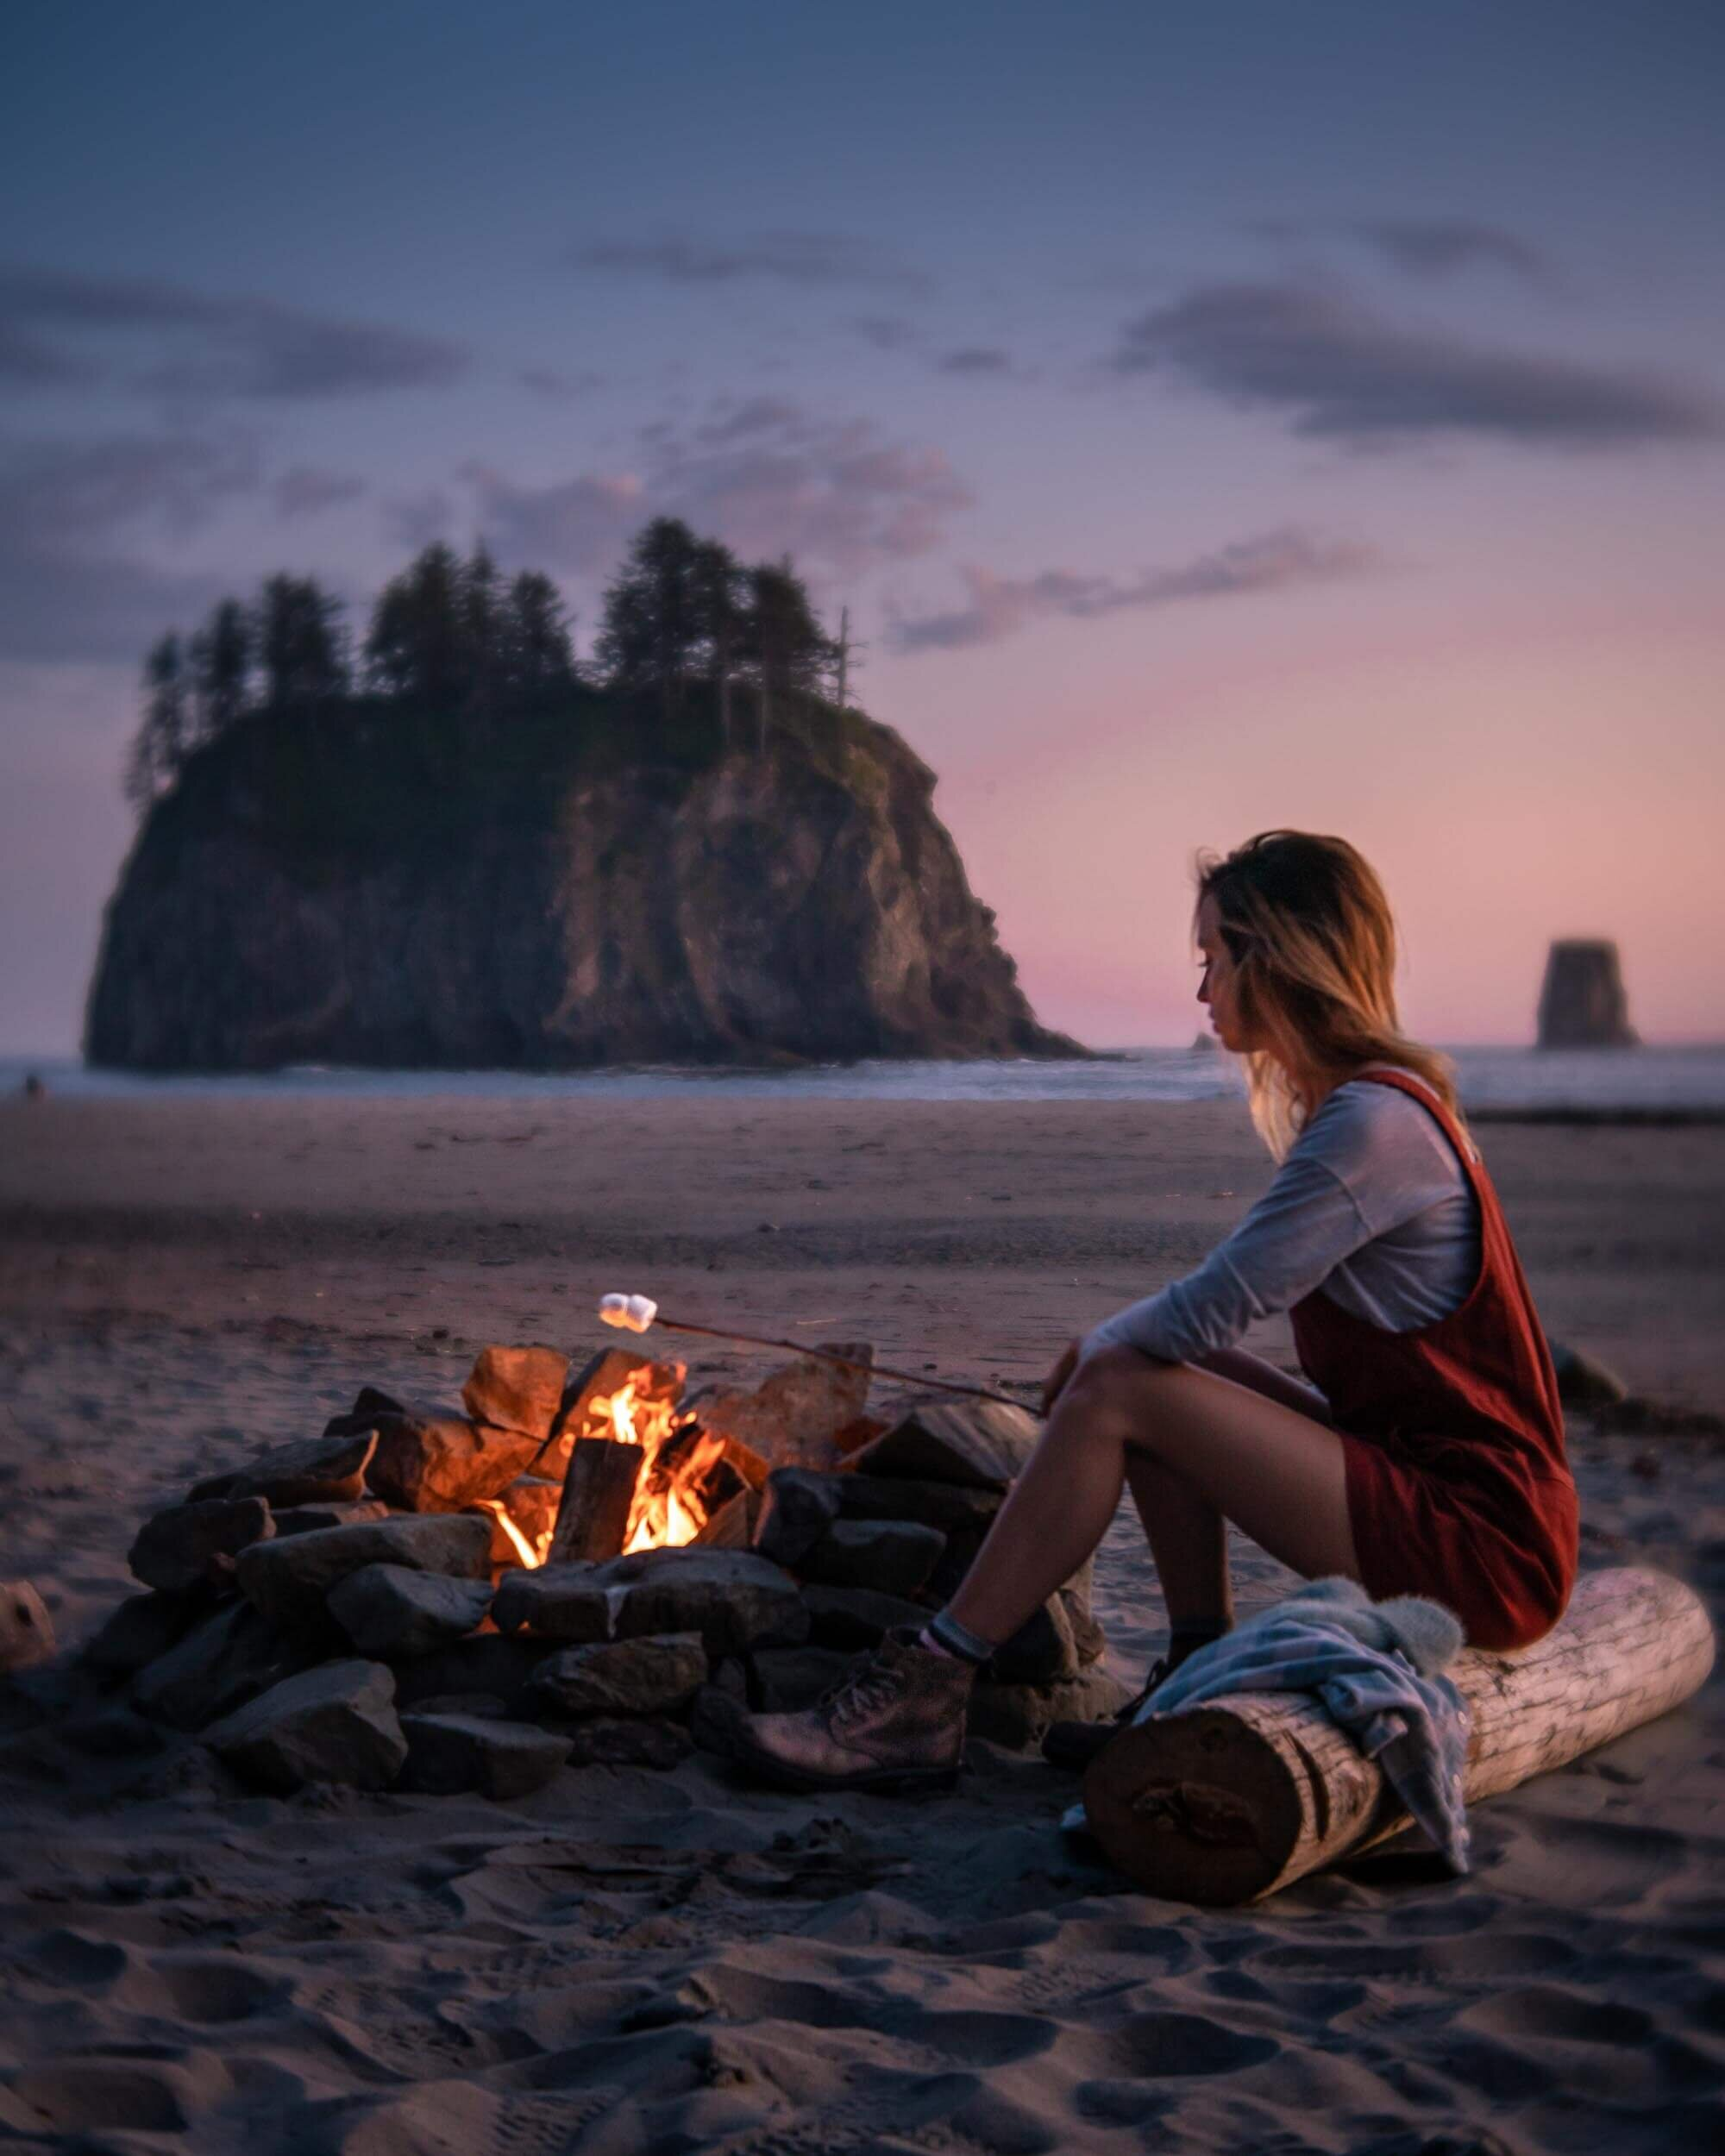 Roasting marshmallows over the camp fire at Second Beach on the Olympic Peninsula in Washington. Wearing: Toad&Co  Jumper  ,The North Face  Long Sleeve Shirt , and Blundstone Lace-Up  Boots .